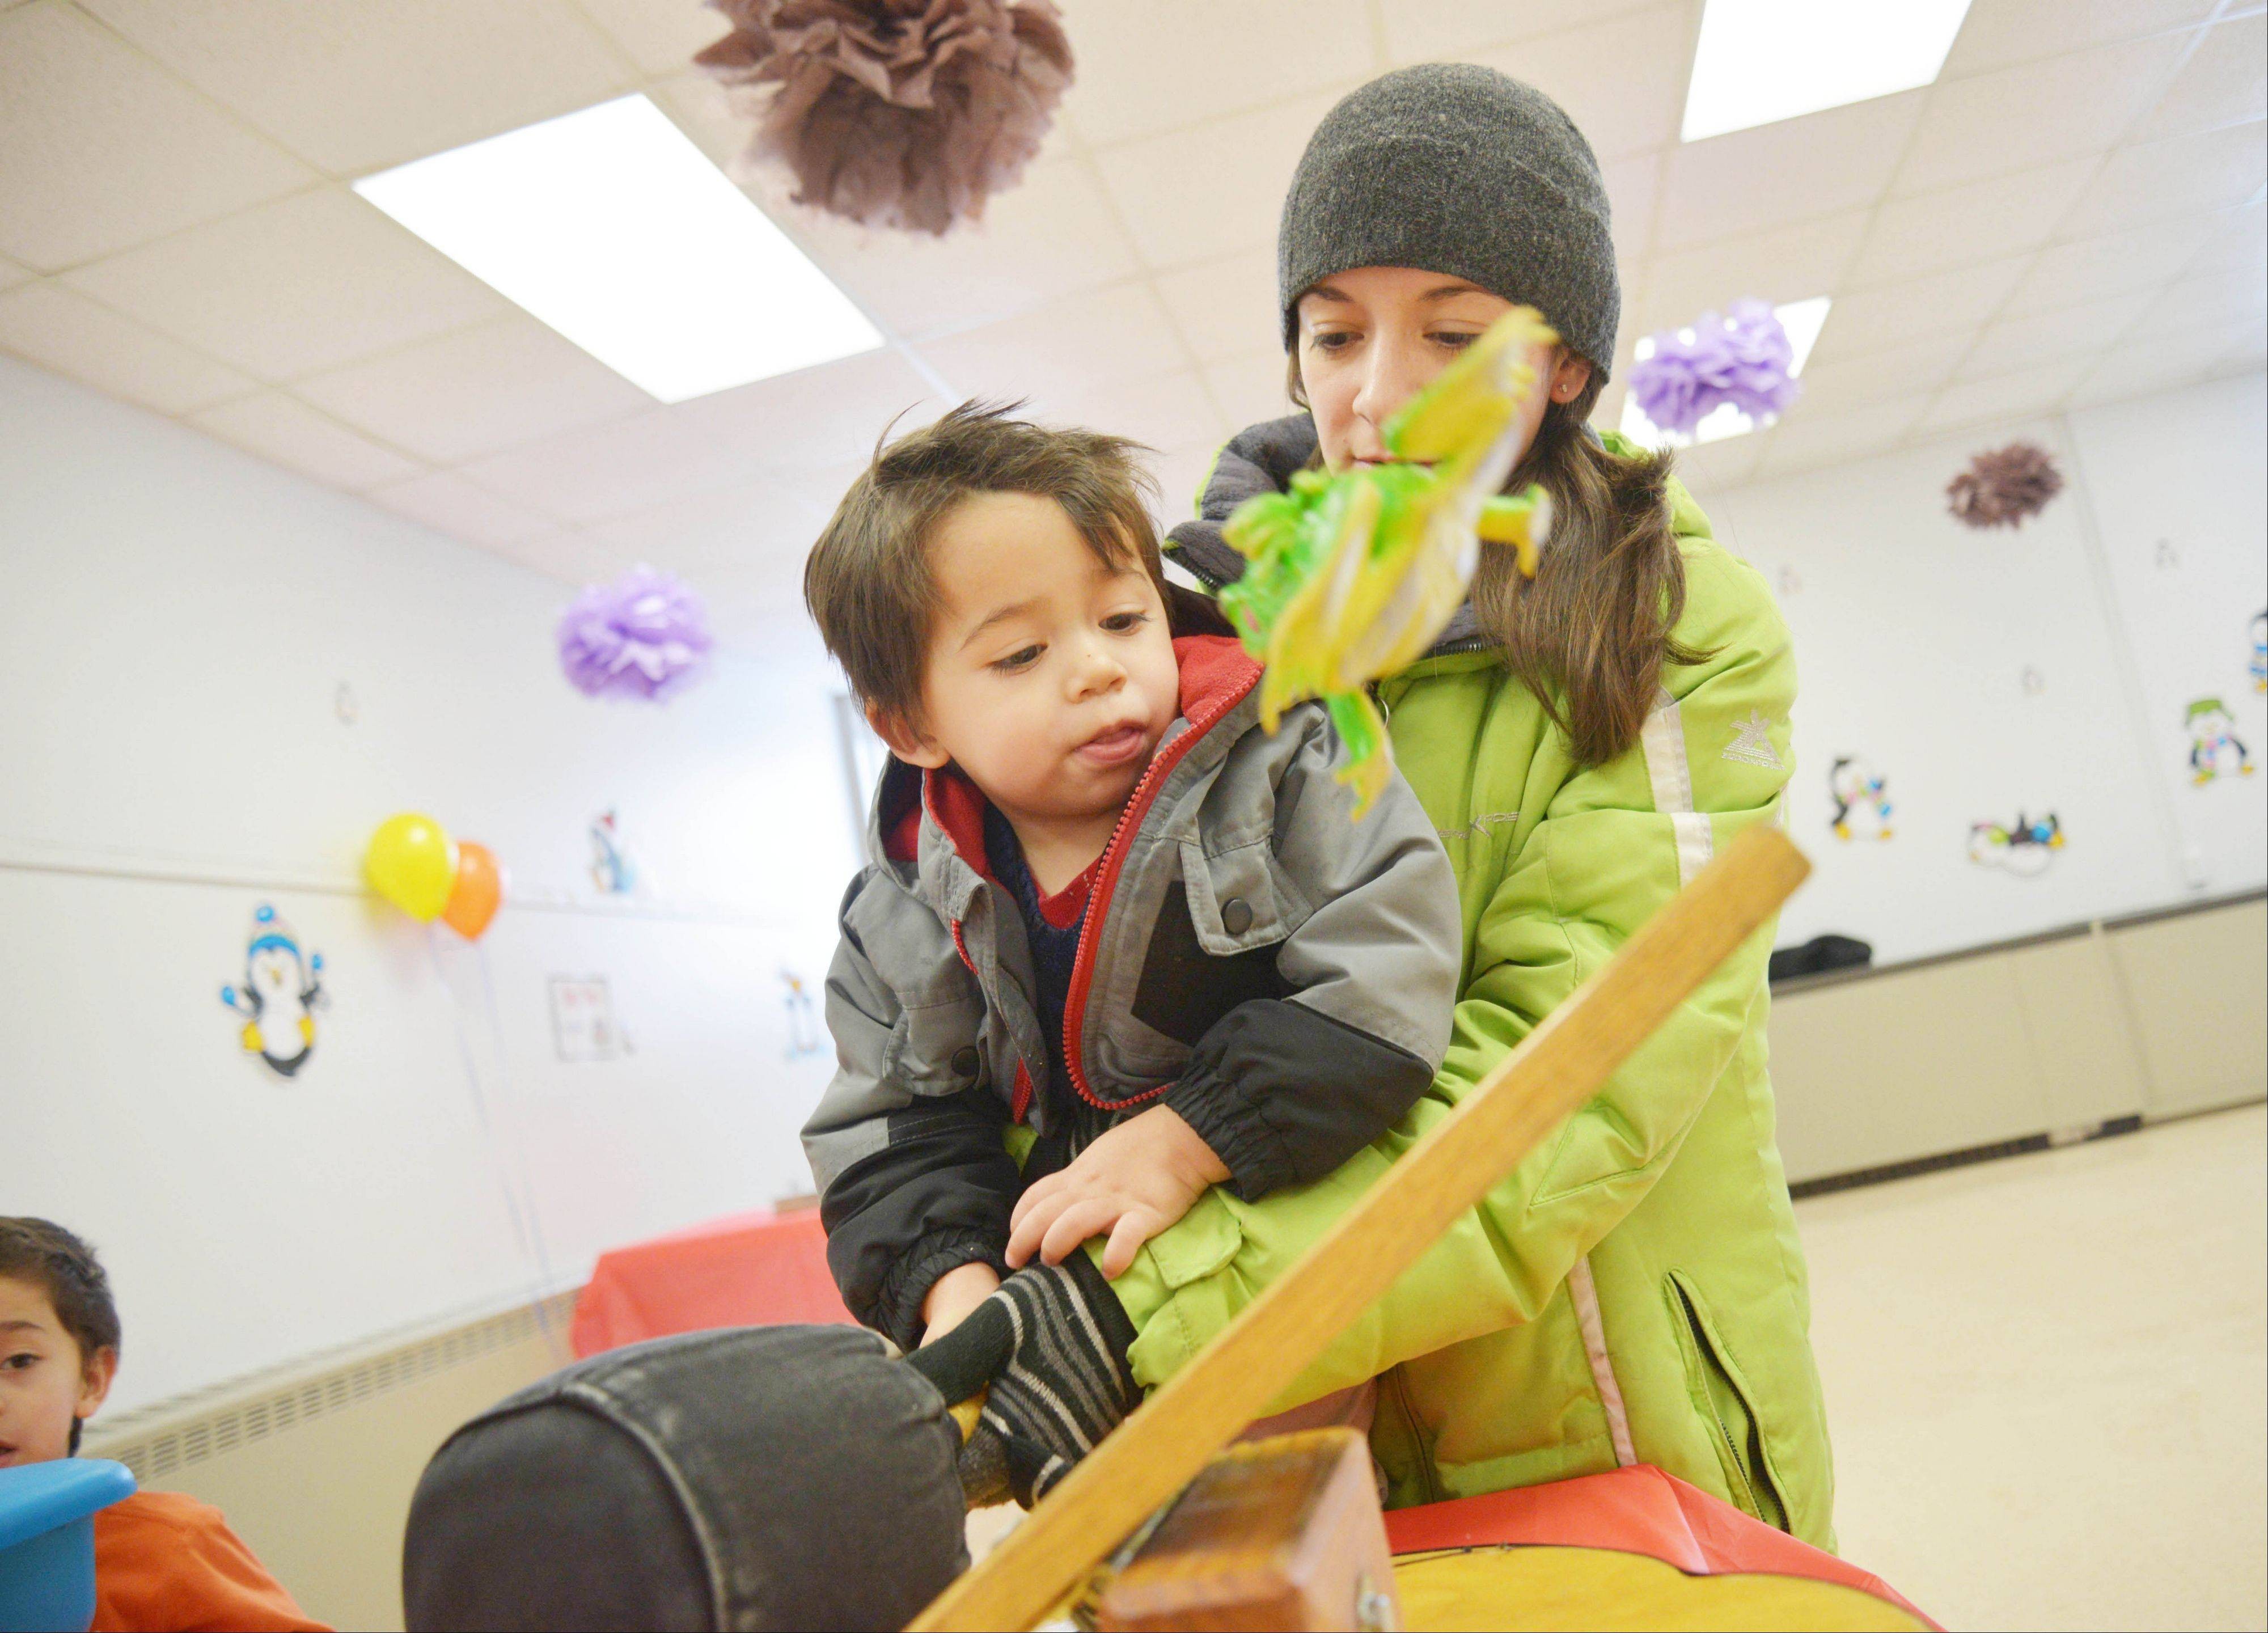 Kristy DaCanay and her son Caleb, 2, of Lombard, play the frog toss game at the Lombard Park District's annual Winter Carnival at Sunset Knoll Recreation Center Saturday.